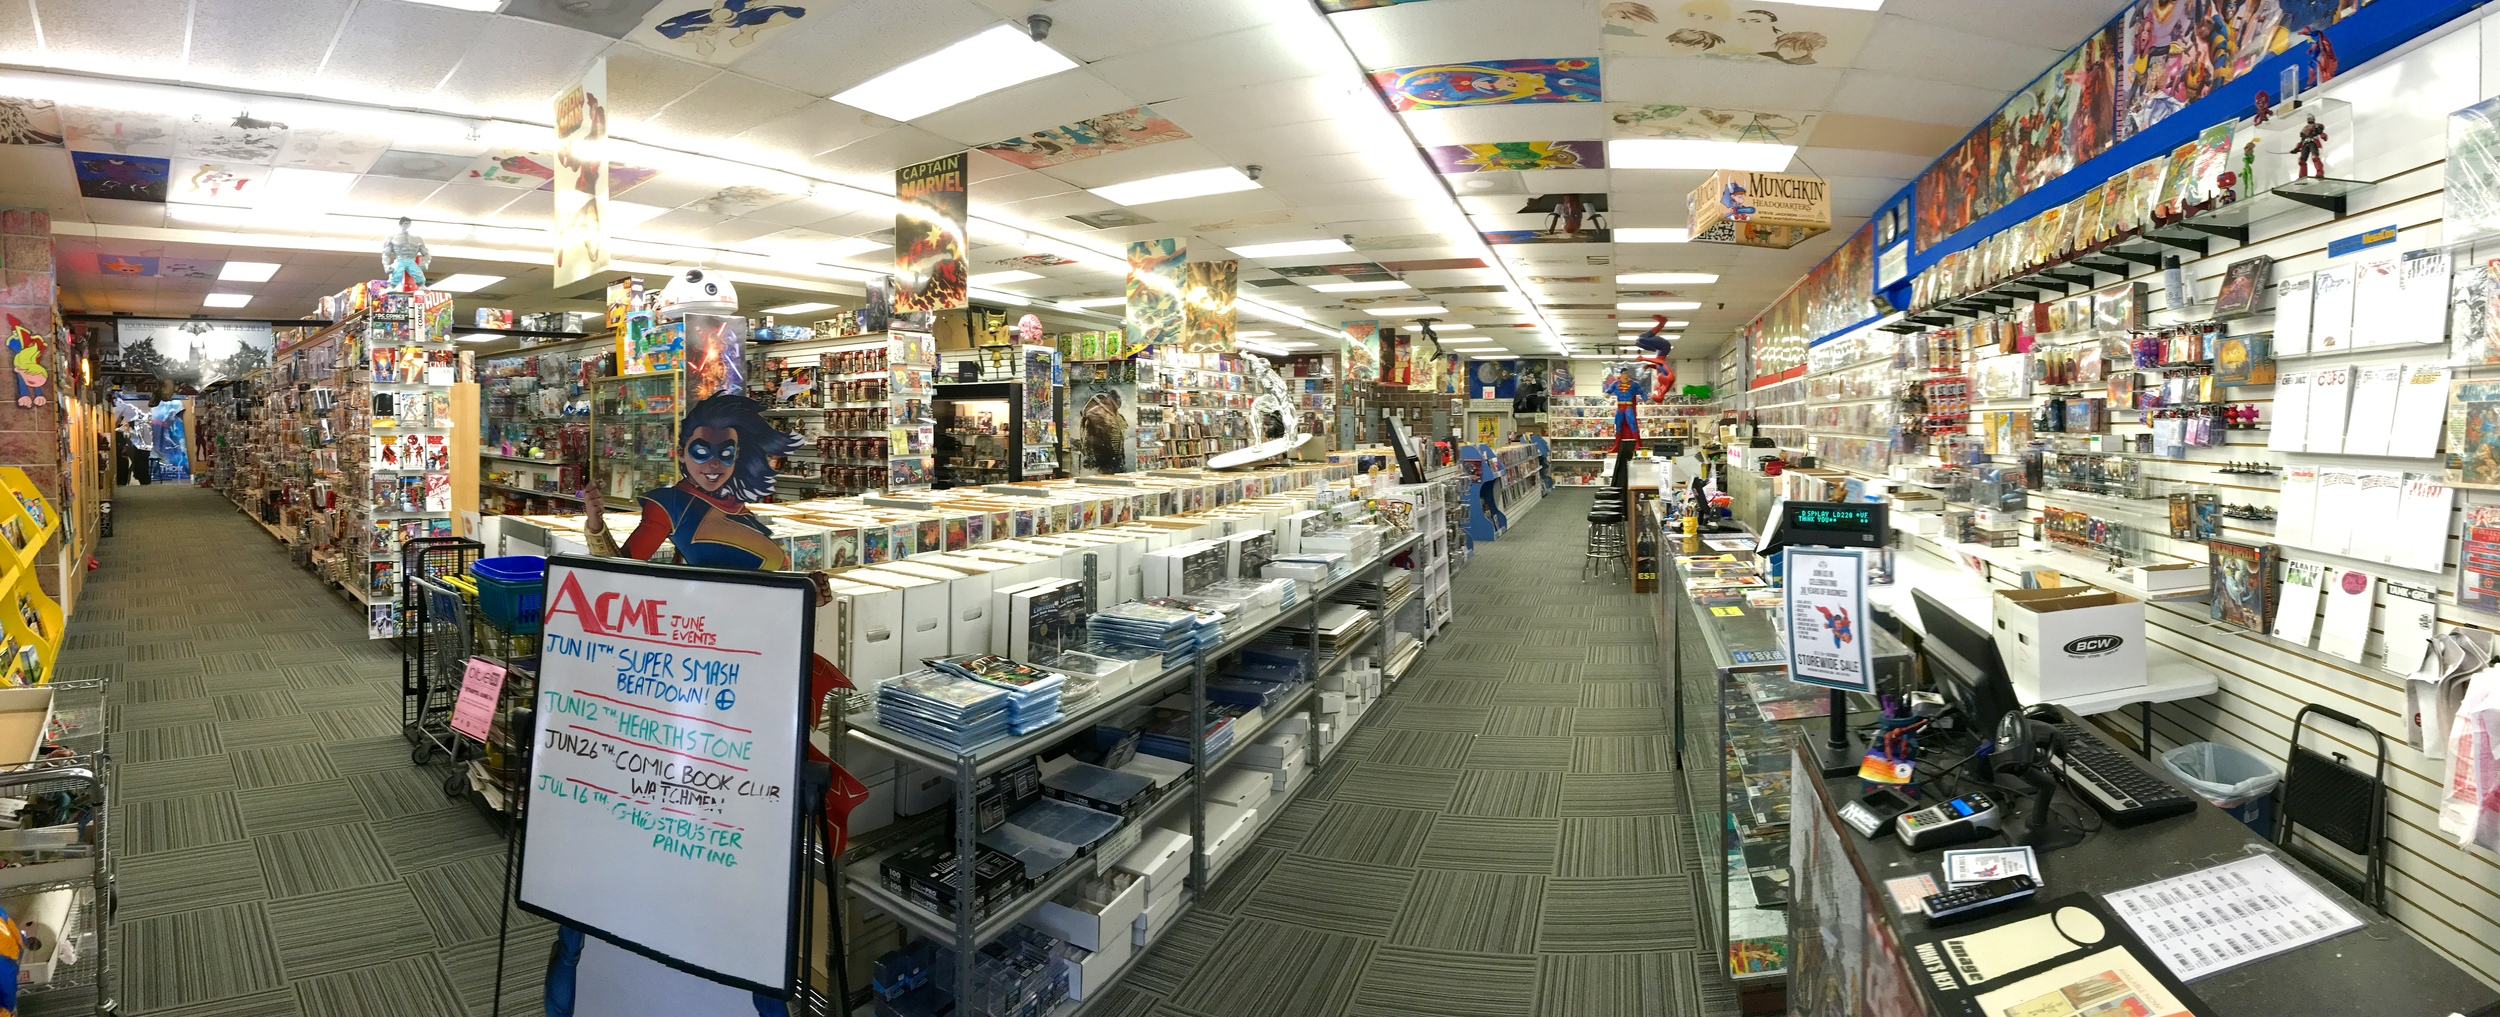 On this episode Crummy Gummy & Dr. Loomis visit Acme Superstore, a Comic book/toy shop in Central Florida that has been around for over 30 years! The guys interview owner Josh Dinkins to disect what it takes to run a successful comic book shop. We also find out what happened to Dr. Loomis's childhood Transformer toys...dun dun dun.